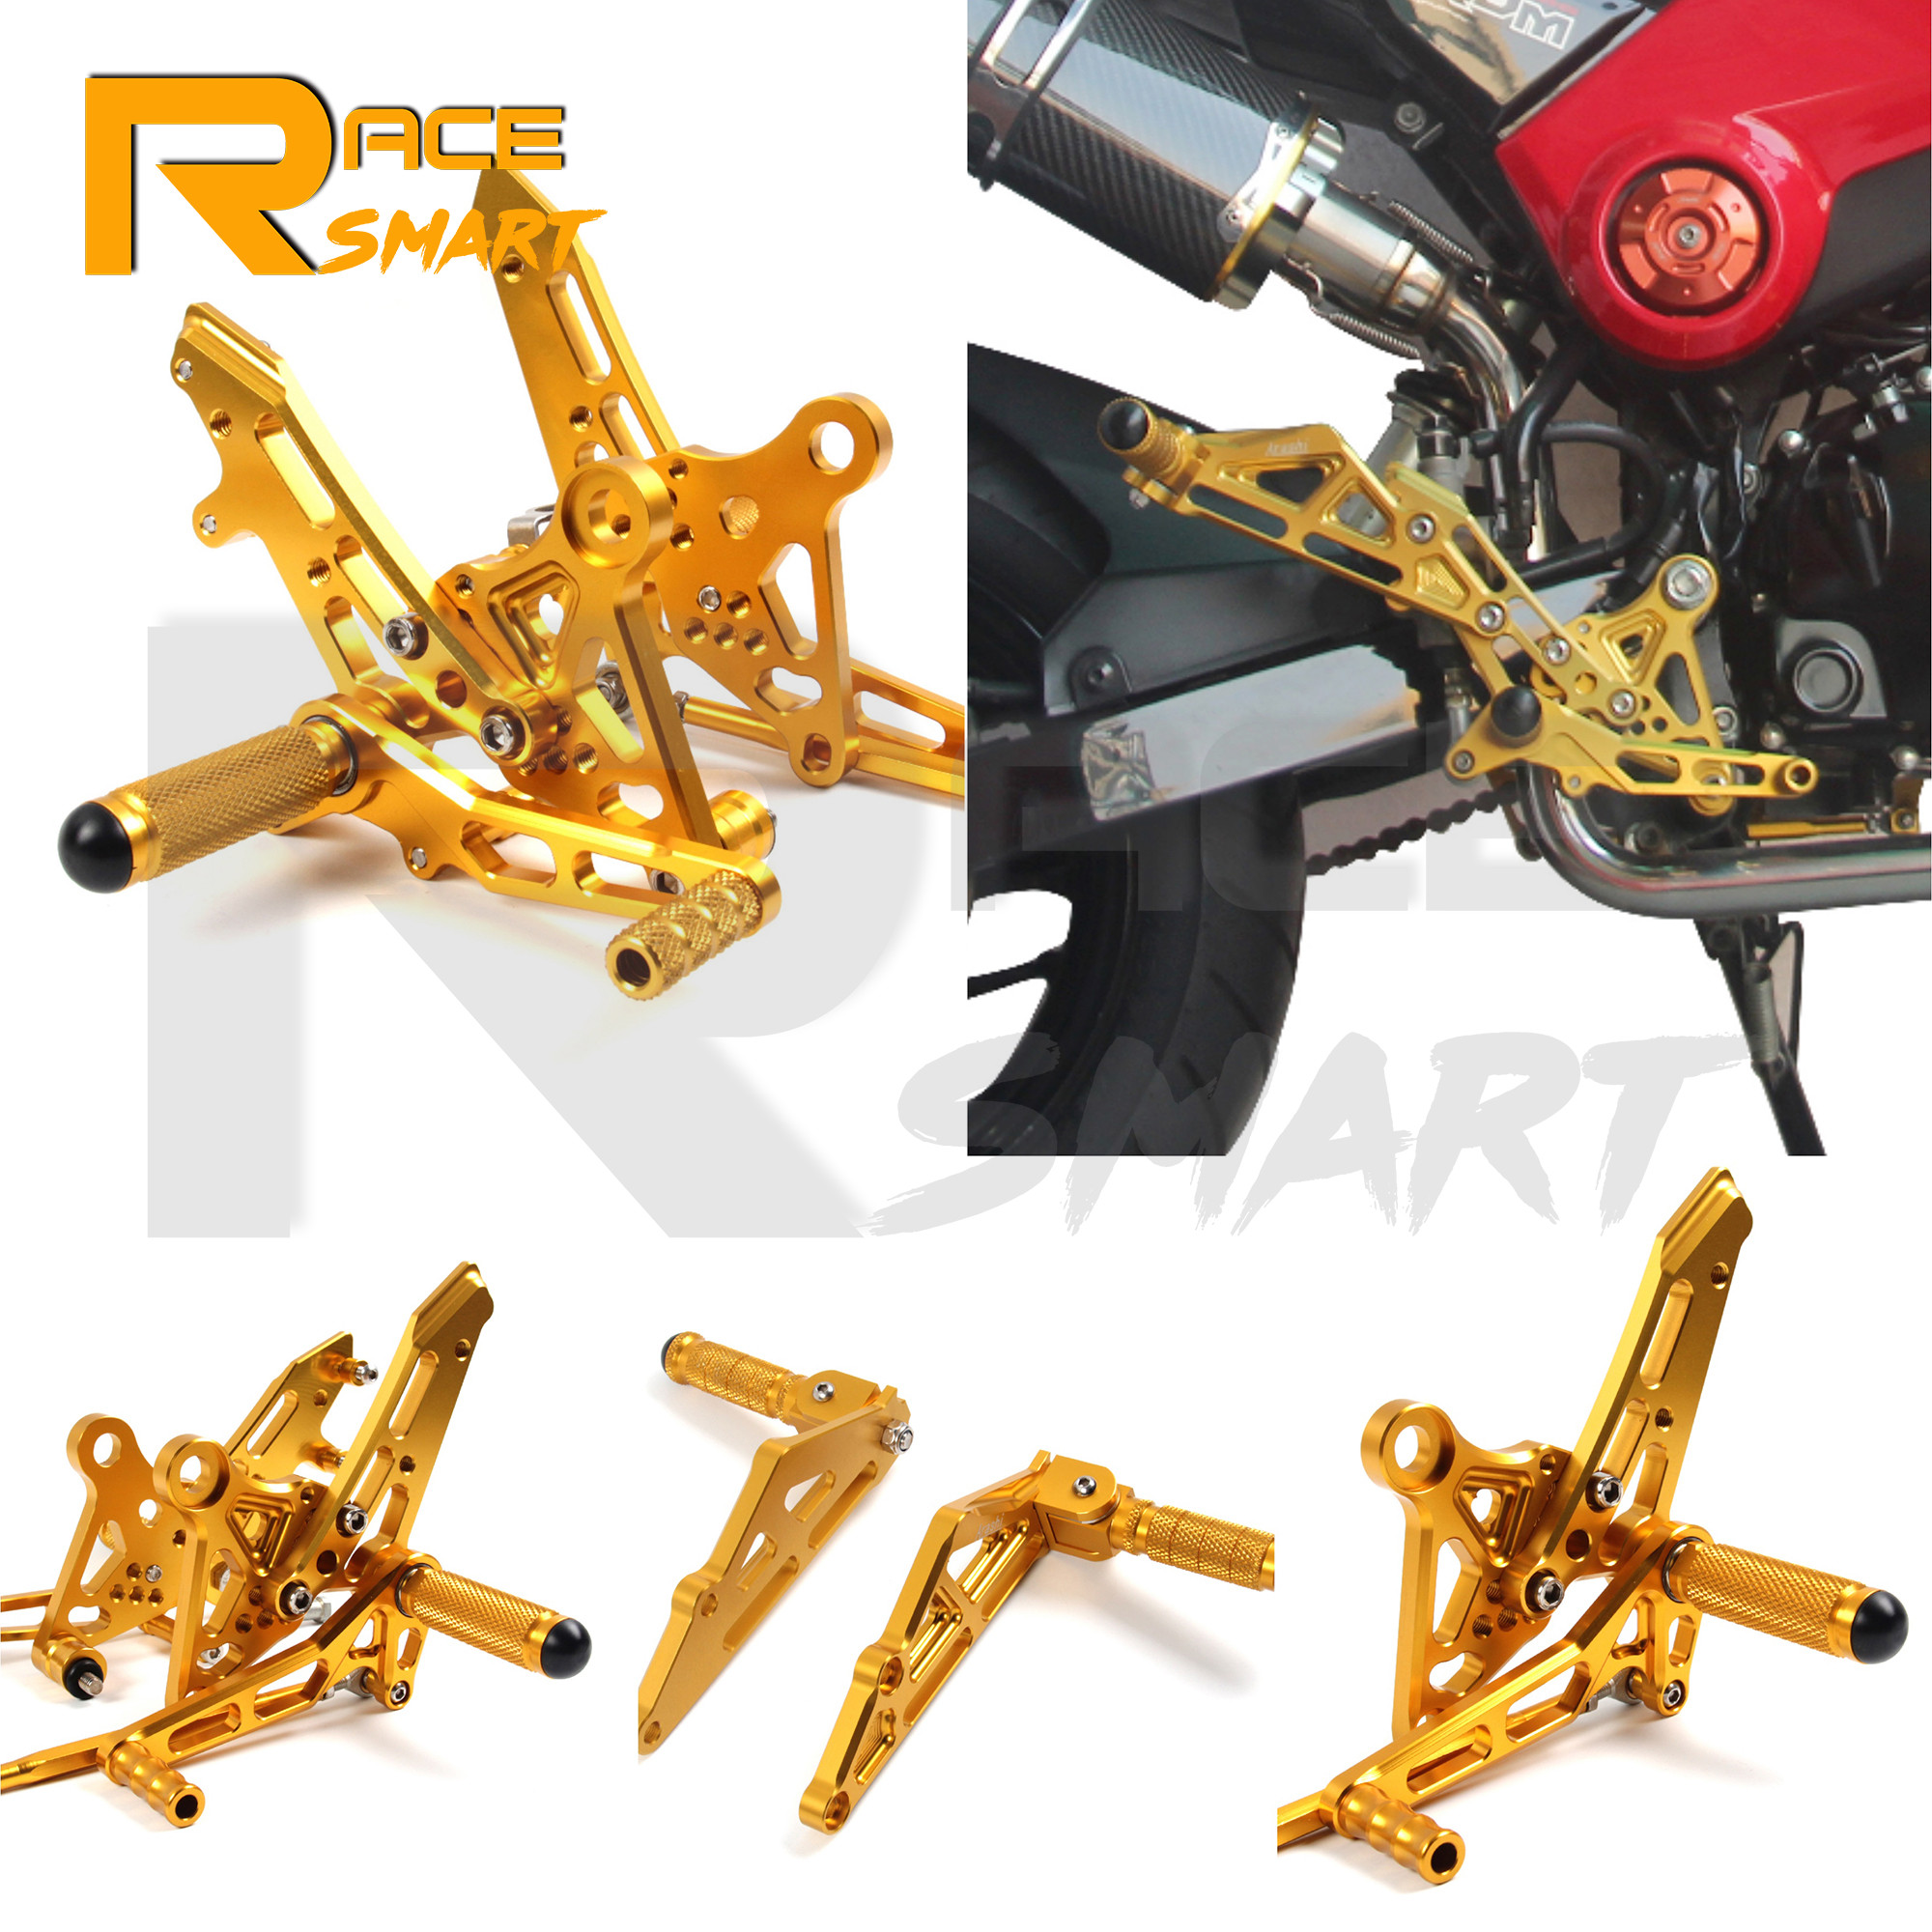 Motorcycle CNC Aluminum Adjustable Rear Set <font><b>Rearsets</b></font> Parts Footrest Foot Rest For HONDA Grom <font><b>MSX125</b></font> SF MS 125SF 2017 2018 2019 image